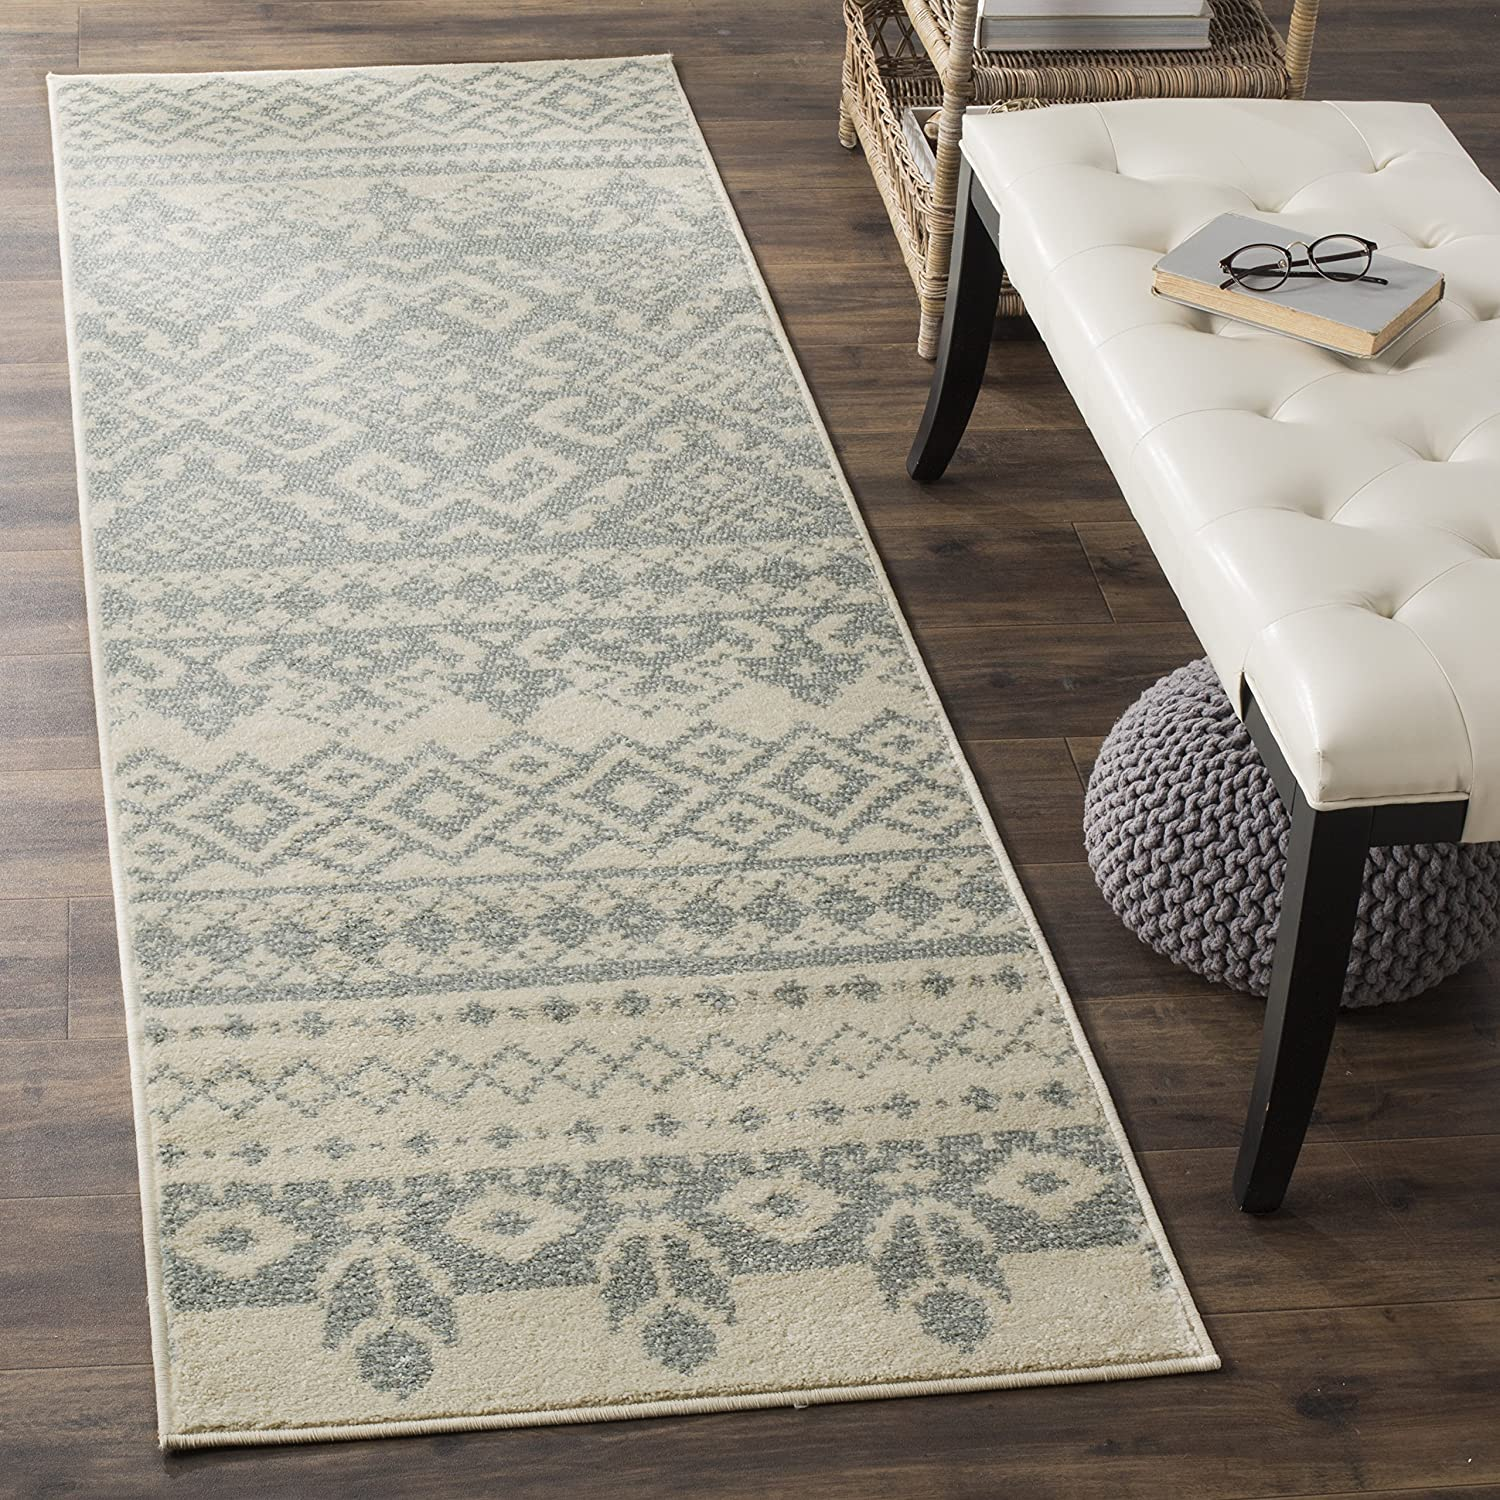 Safavieh Adirondack Collection Gifts Our shop most popular ADR107S Rustic Non-Shedding Boho